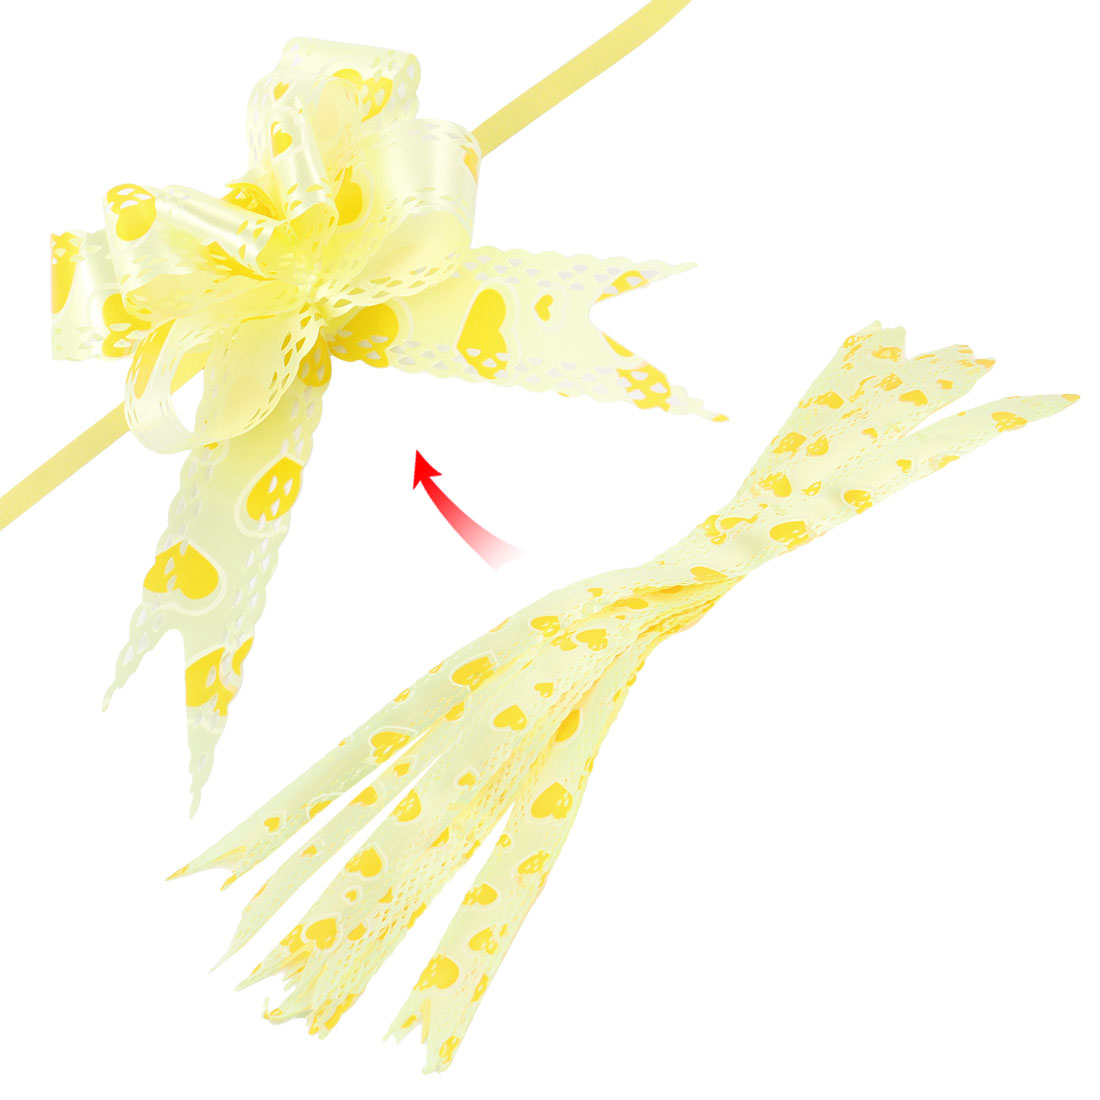 10 Pcs DIY Gift Wrap Festival Ornament Hollow out Pull Bow Ribbons Light Yellow